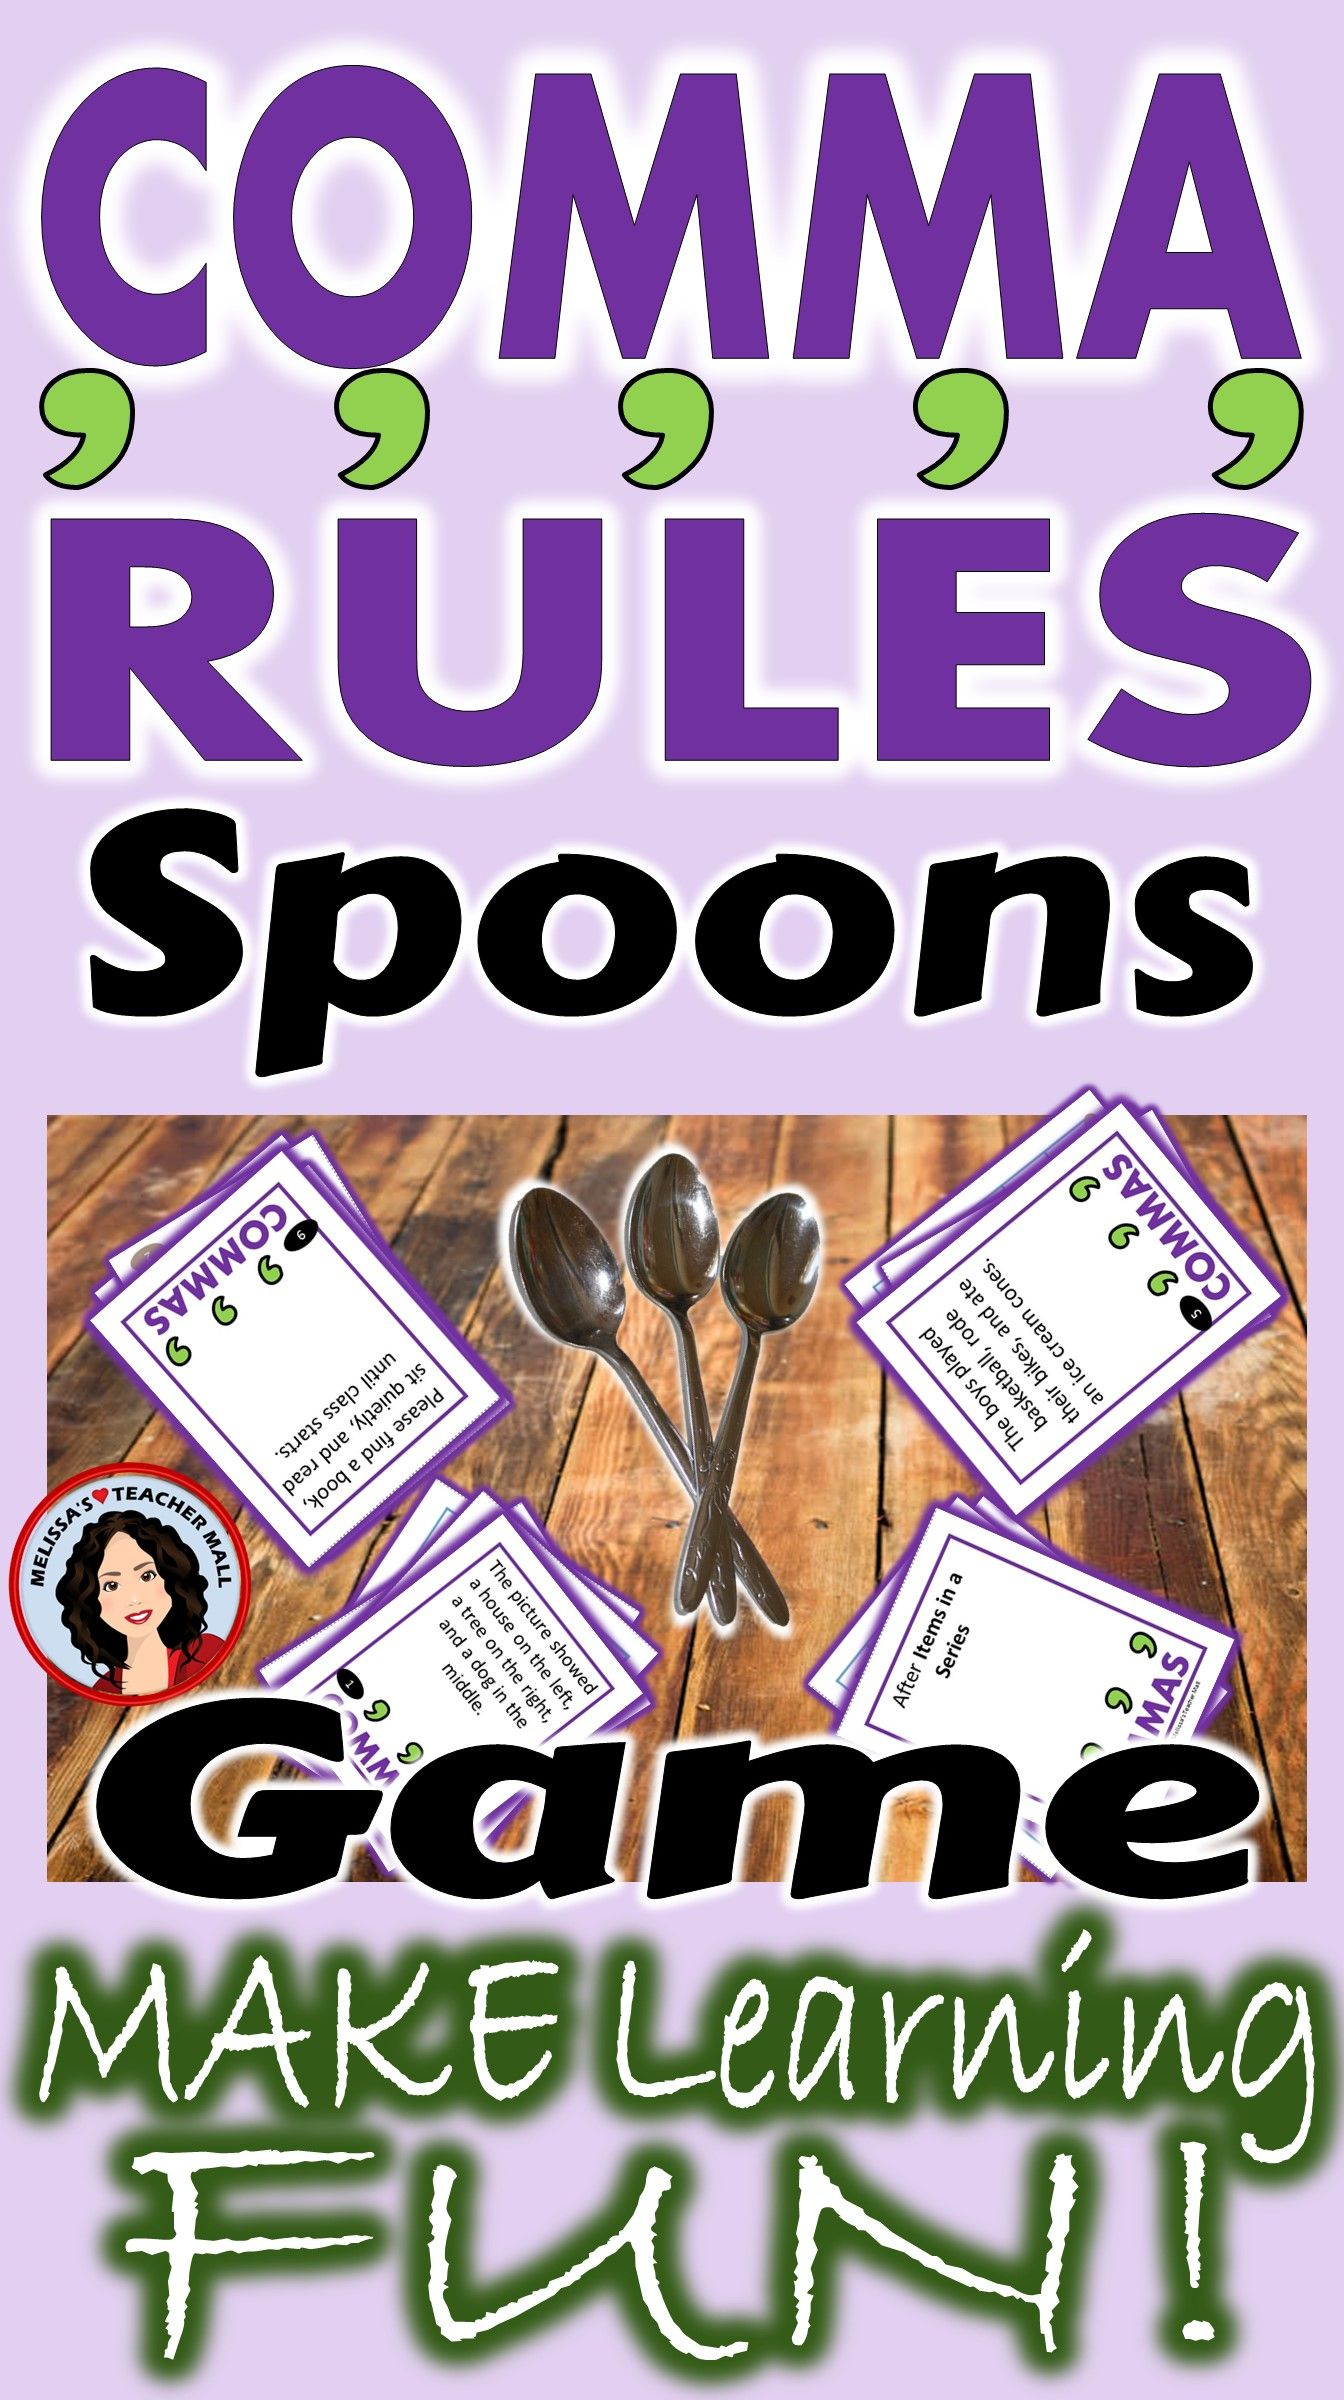 Comma Rules Spoons Game 3 Games Included